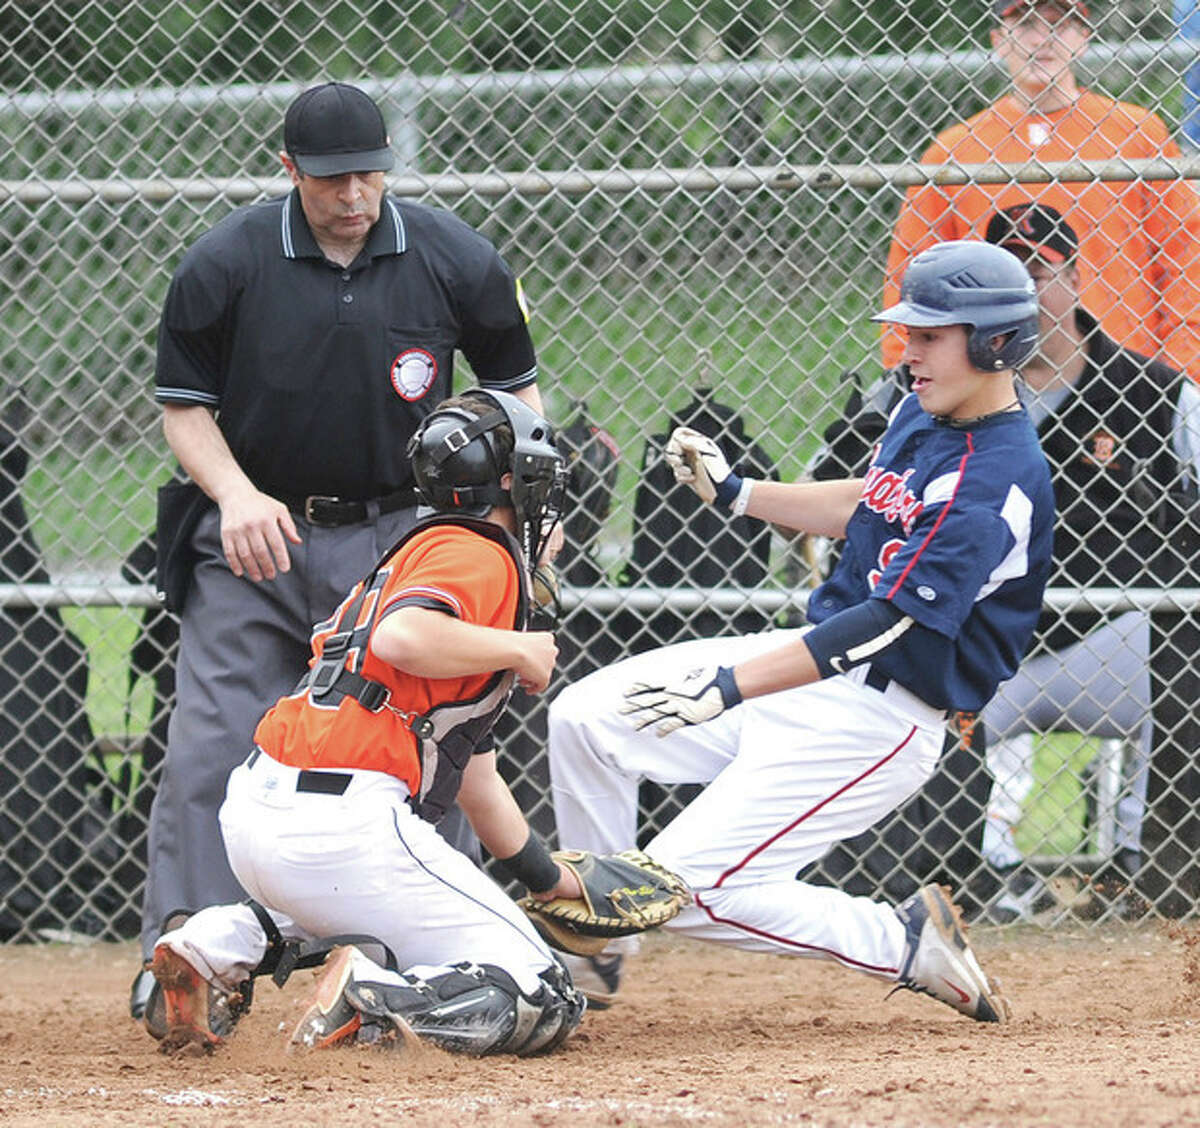 Hour photo/John Nash Brien McMahon's Mike Giordano, right, slides into home as Ridgefield catcher Eric Jones makes the tag in front of the the umpire during Saturday's game in Norwalk. McMahon had three runners thrown out at the plate, but went on to a 3-0 win.